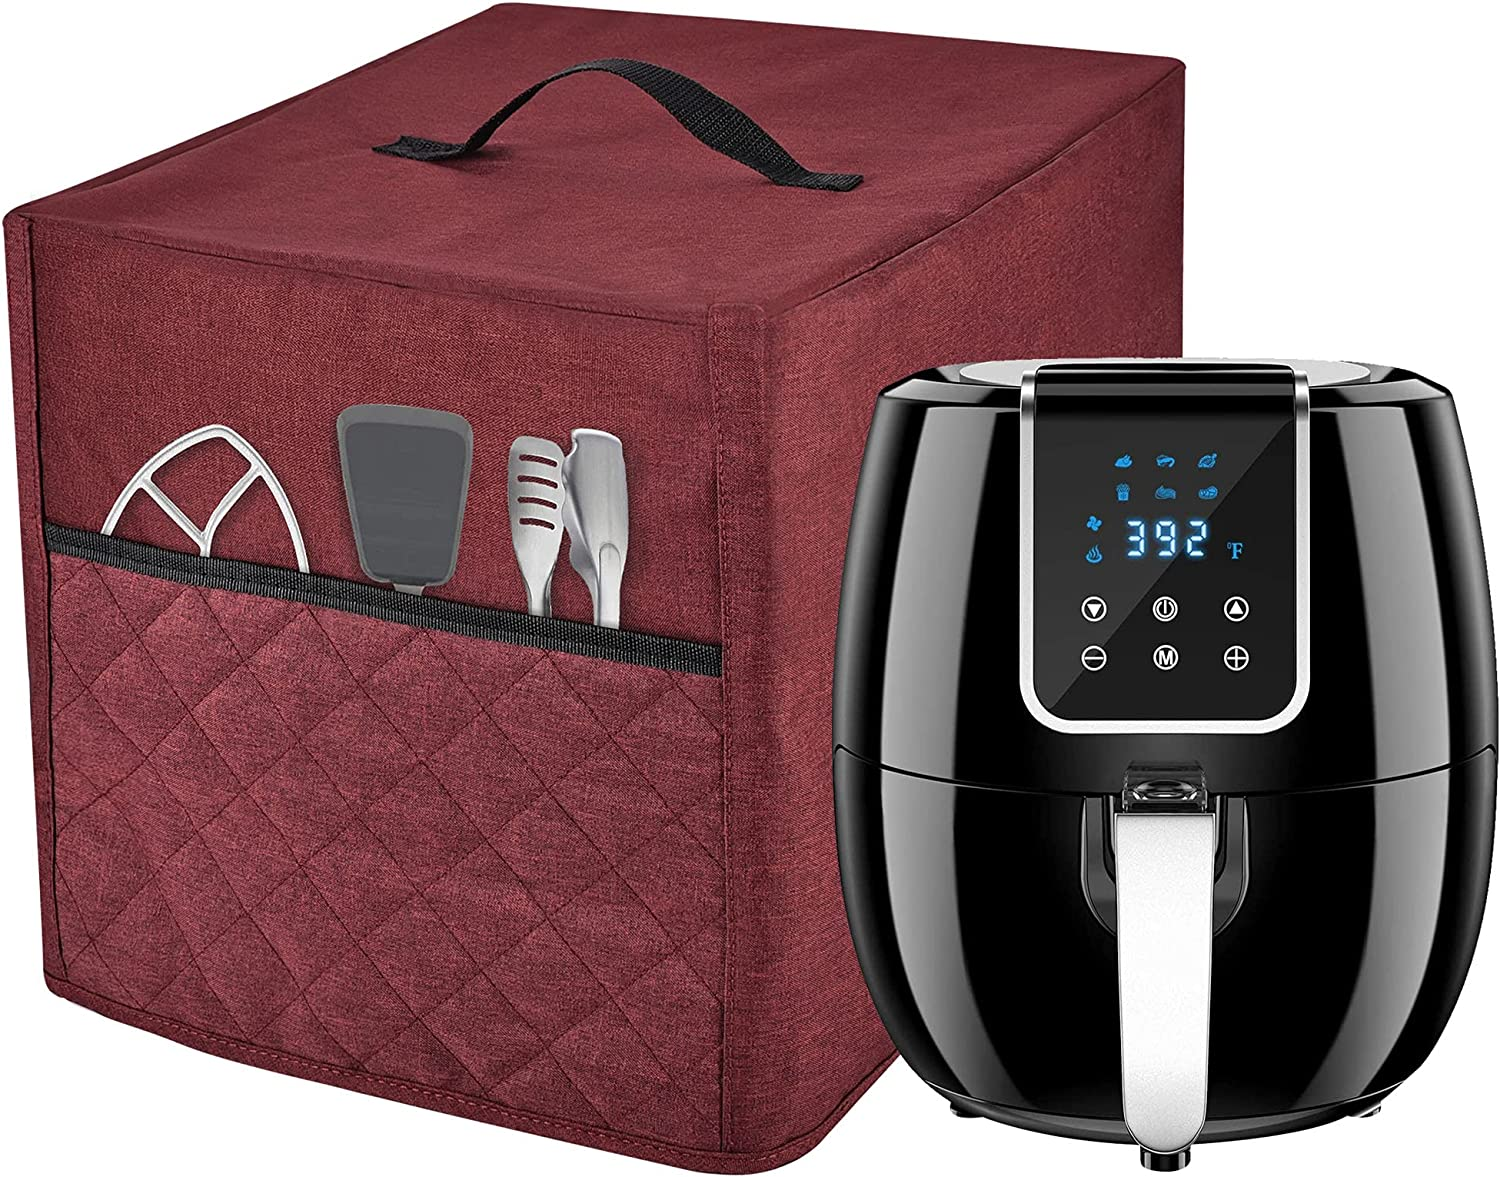 Air Fryer Dust Cover with 3 Accessory Pocket (burgundy, FIT FOR 5-6 QUART)